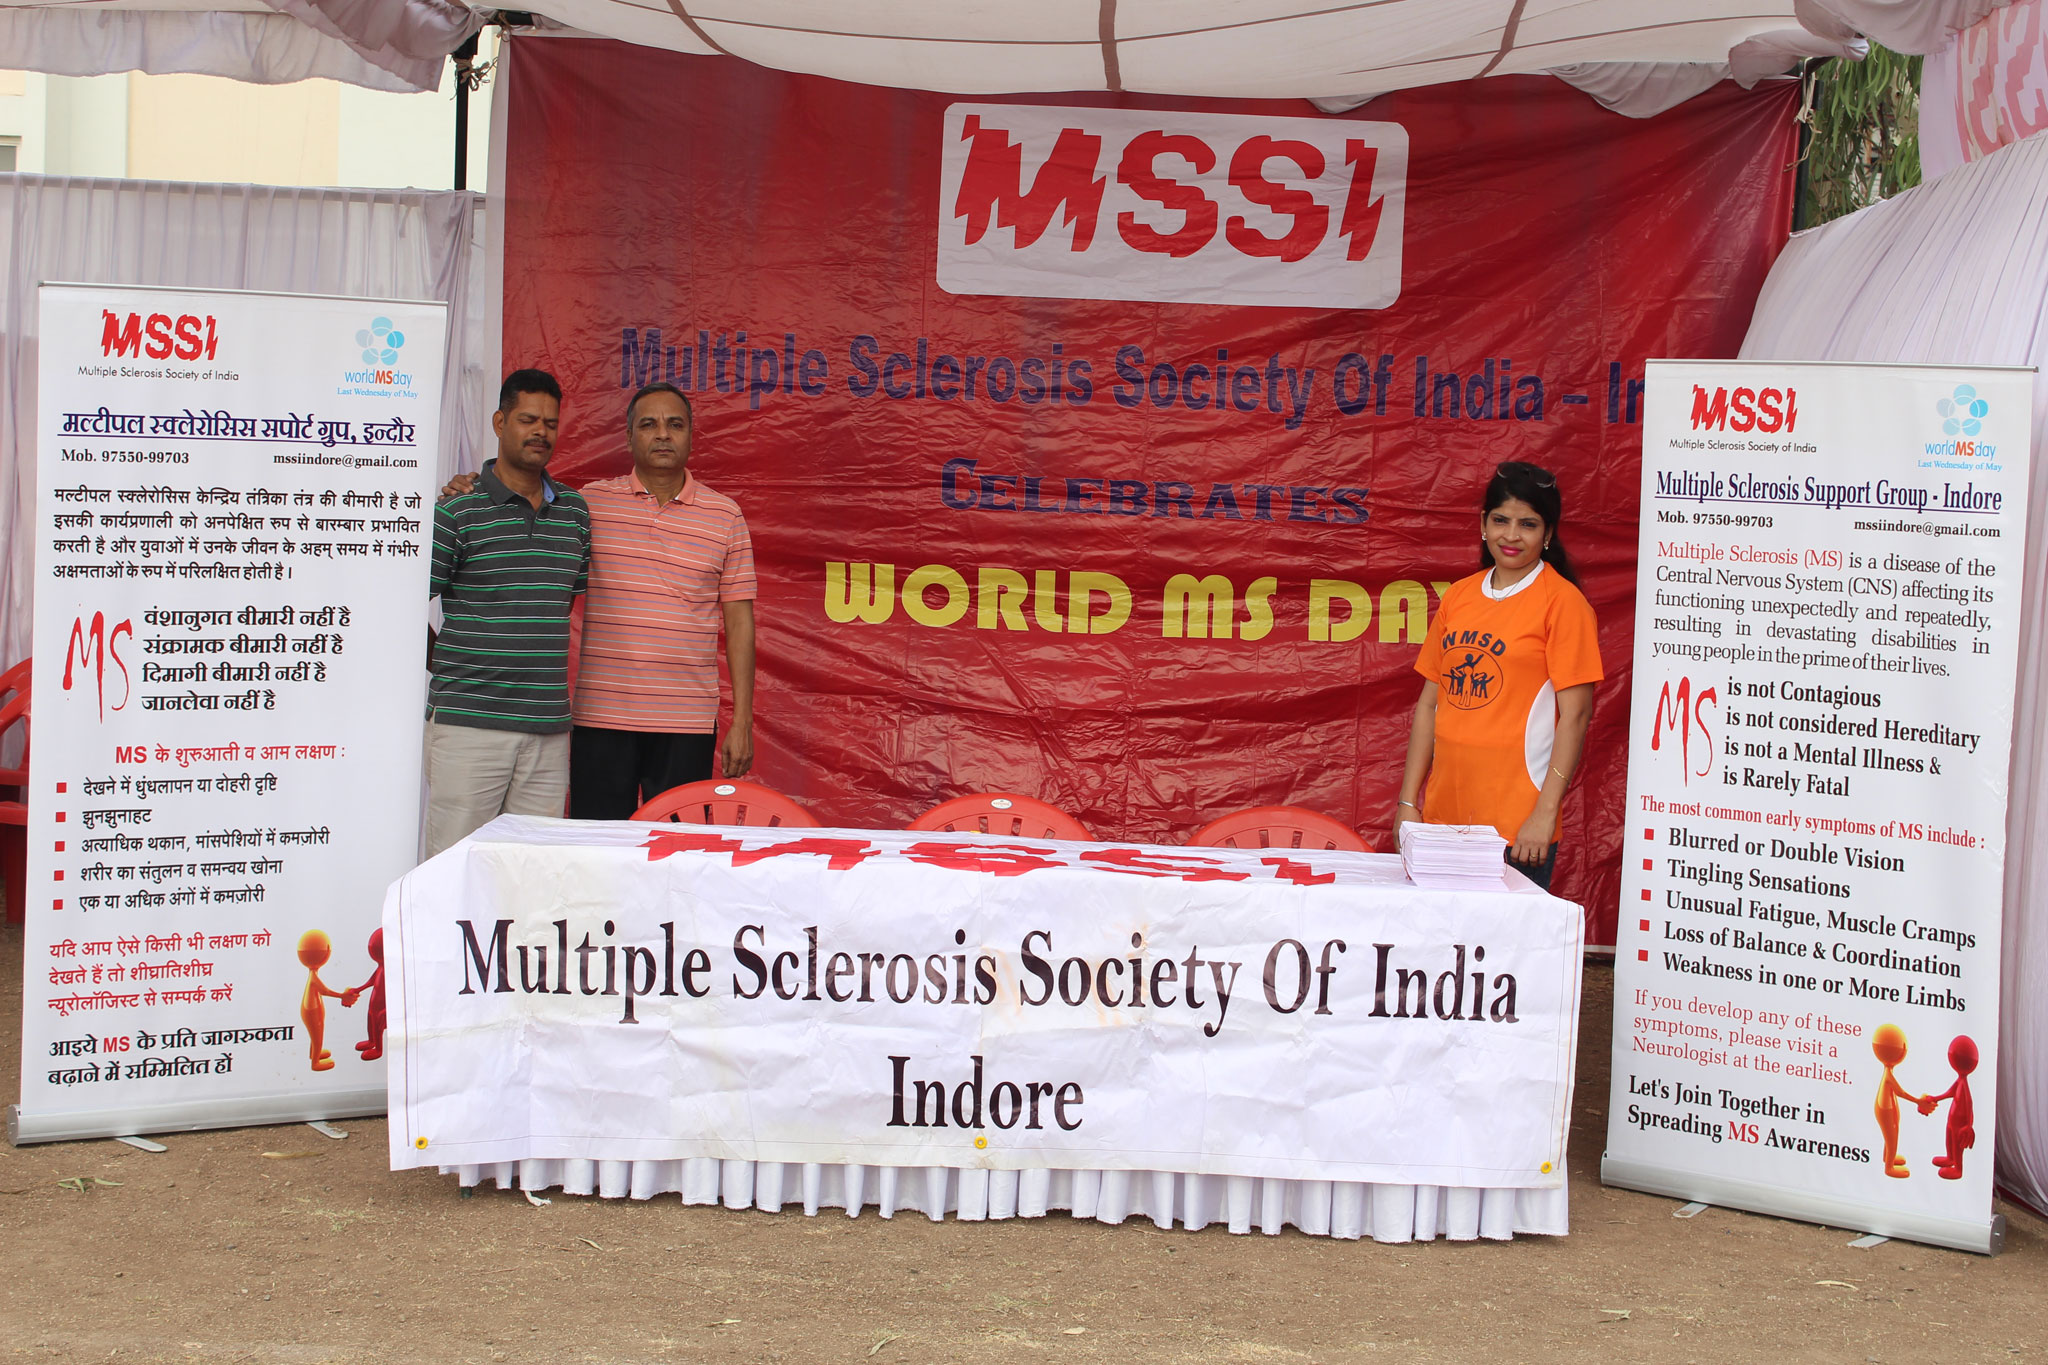 Multiple Sclerosis Society of India (MSSI)